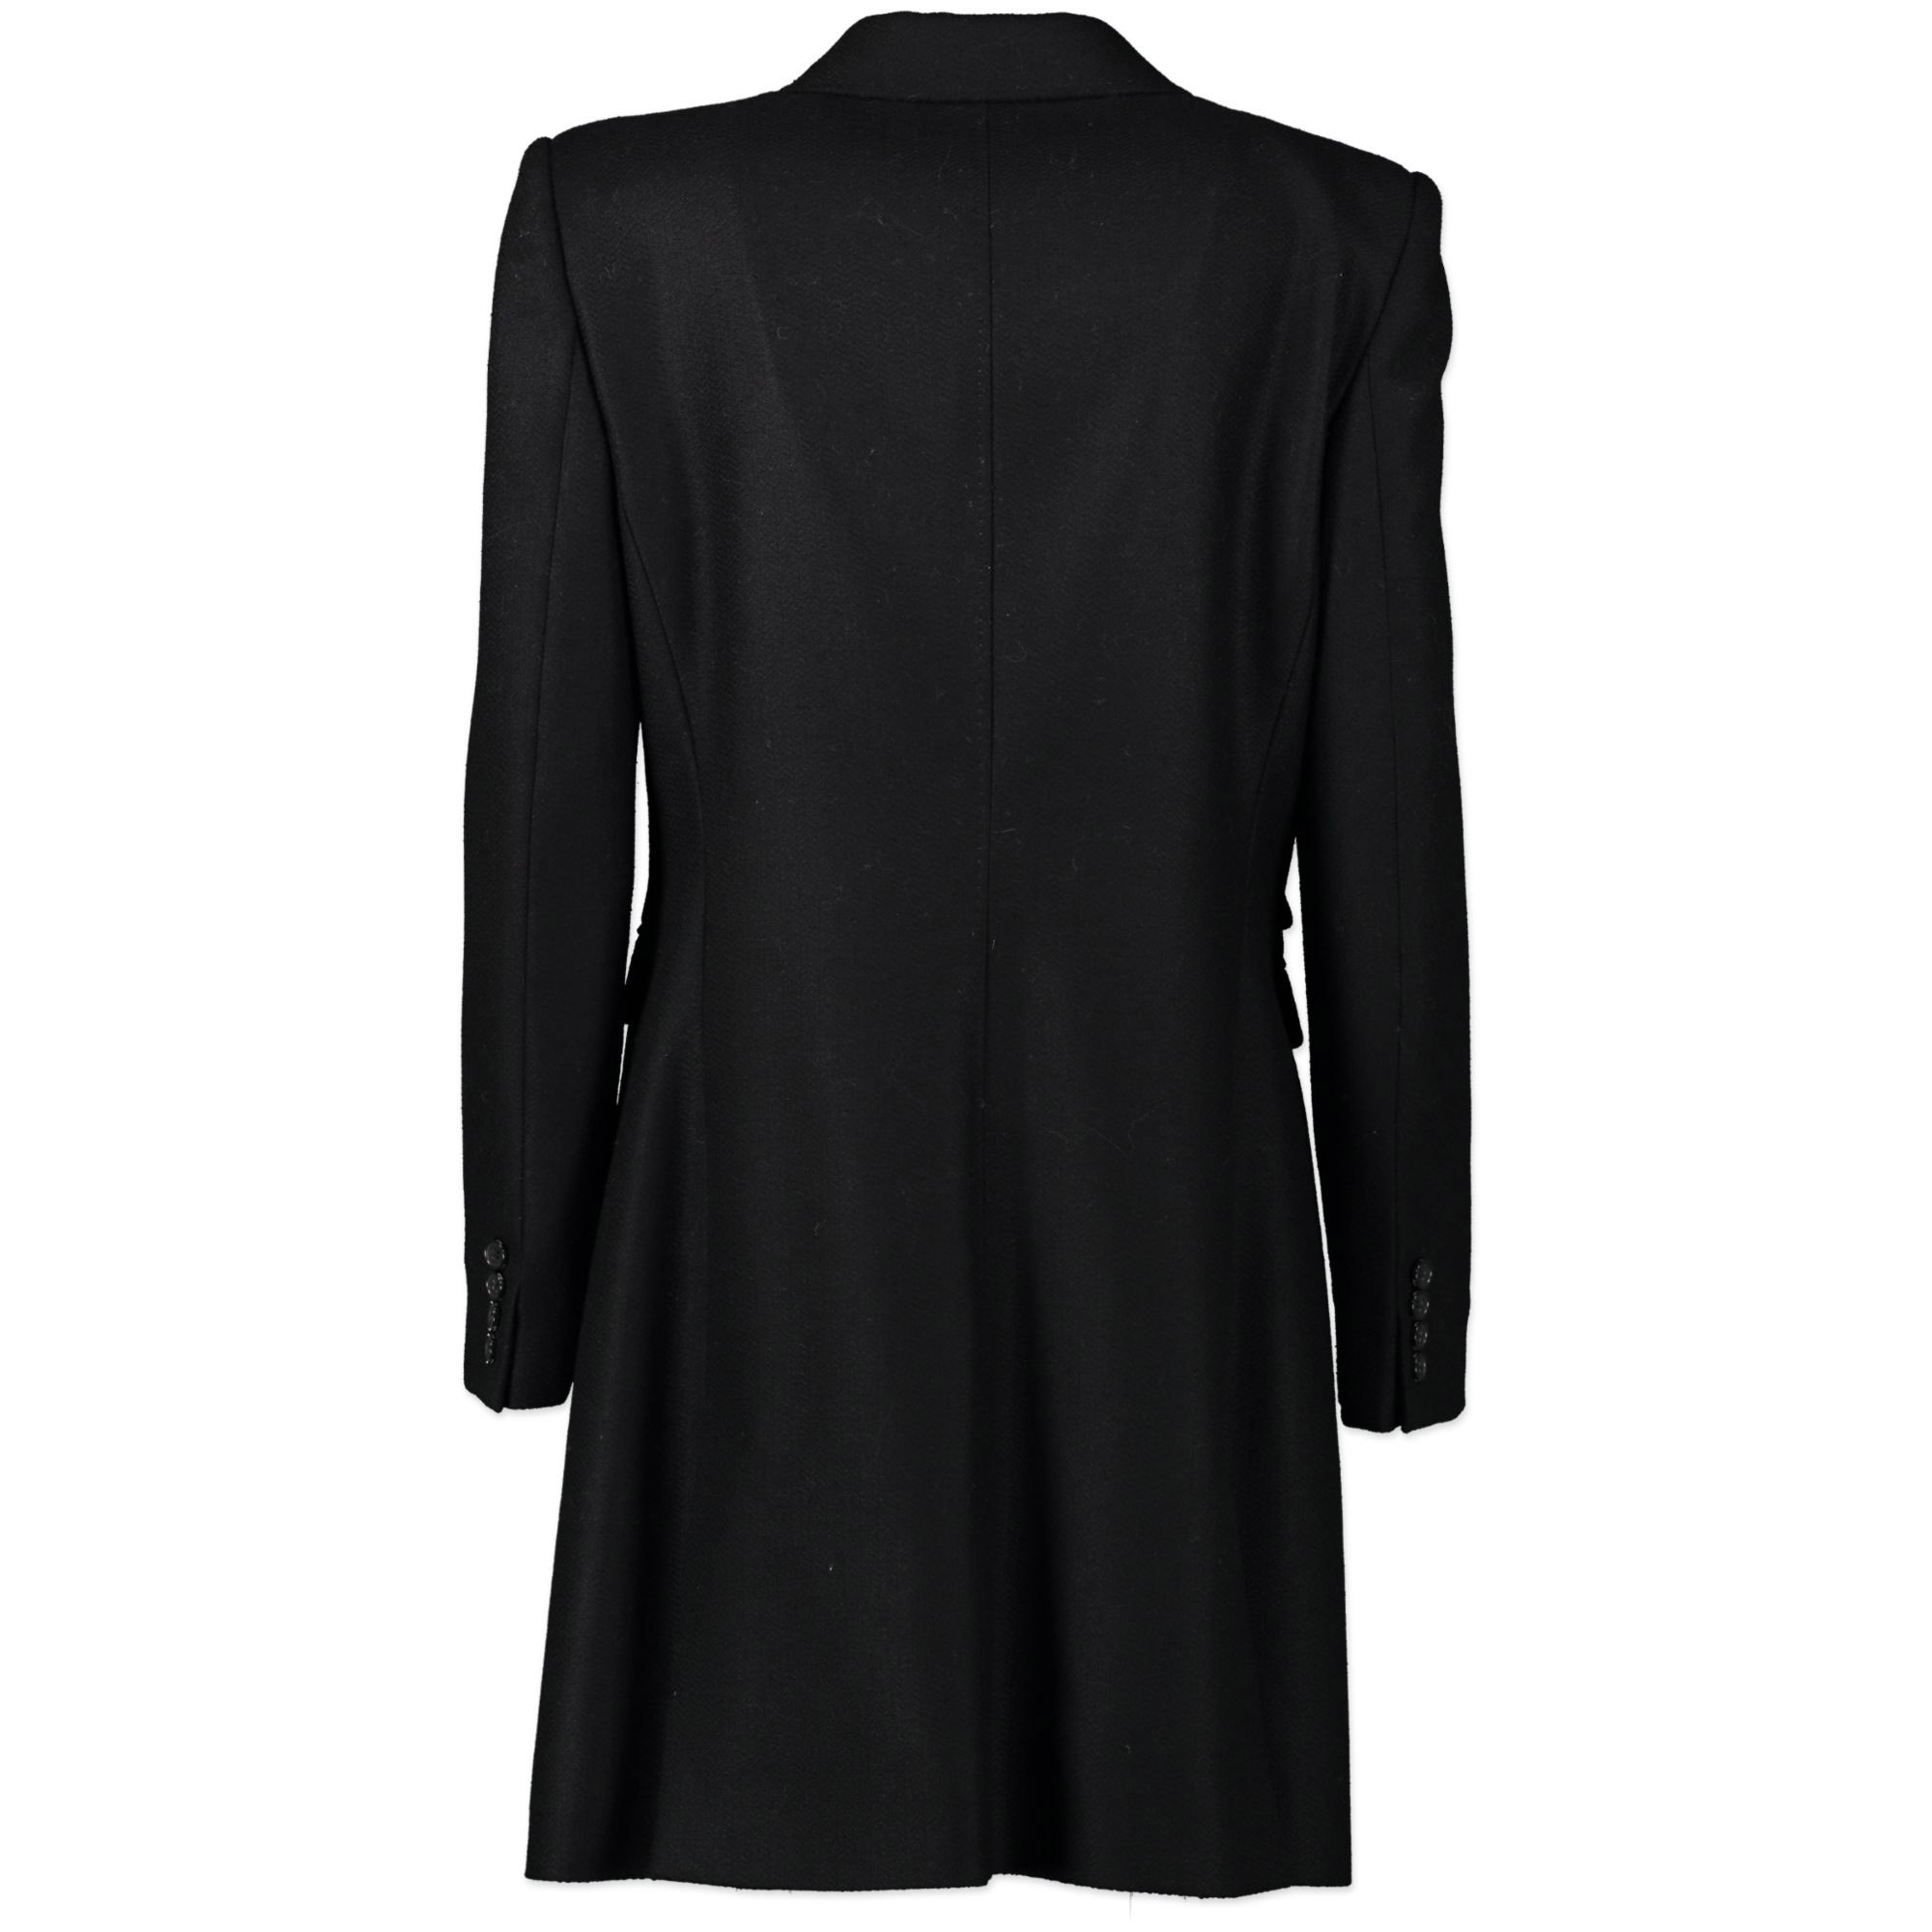 Dolce & Gabbana Black Coat for the best price at Labellov secondhand luxury in Antwerp